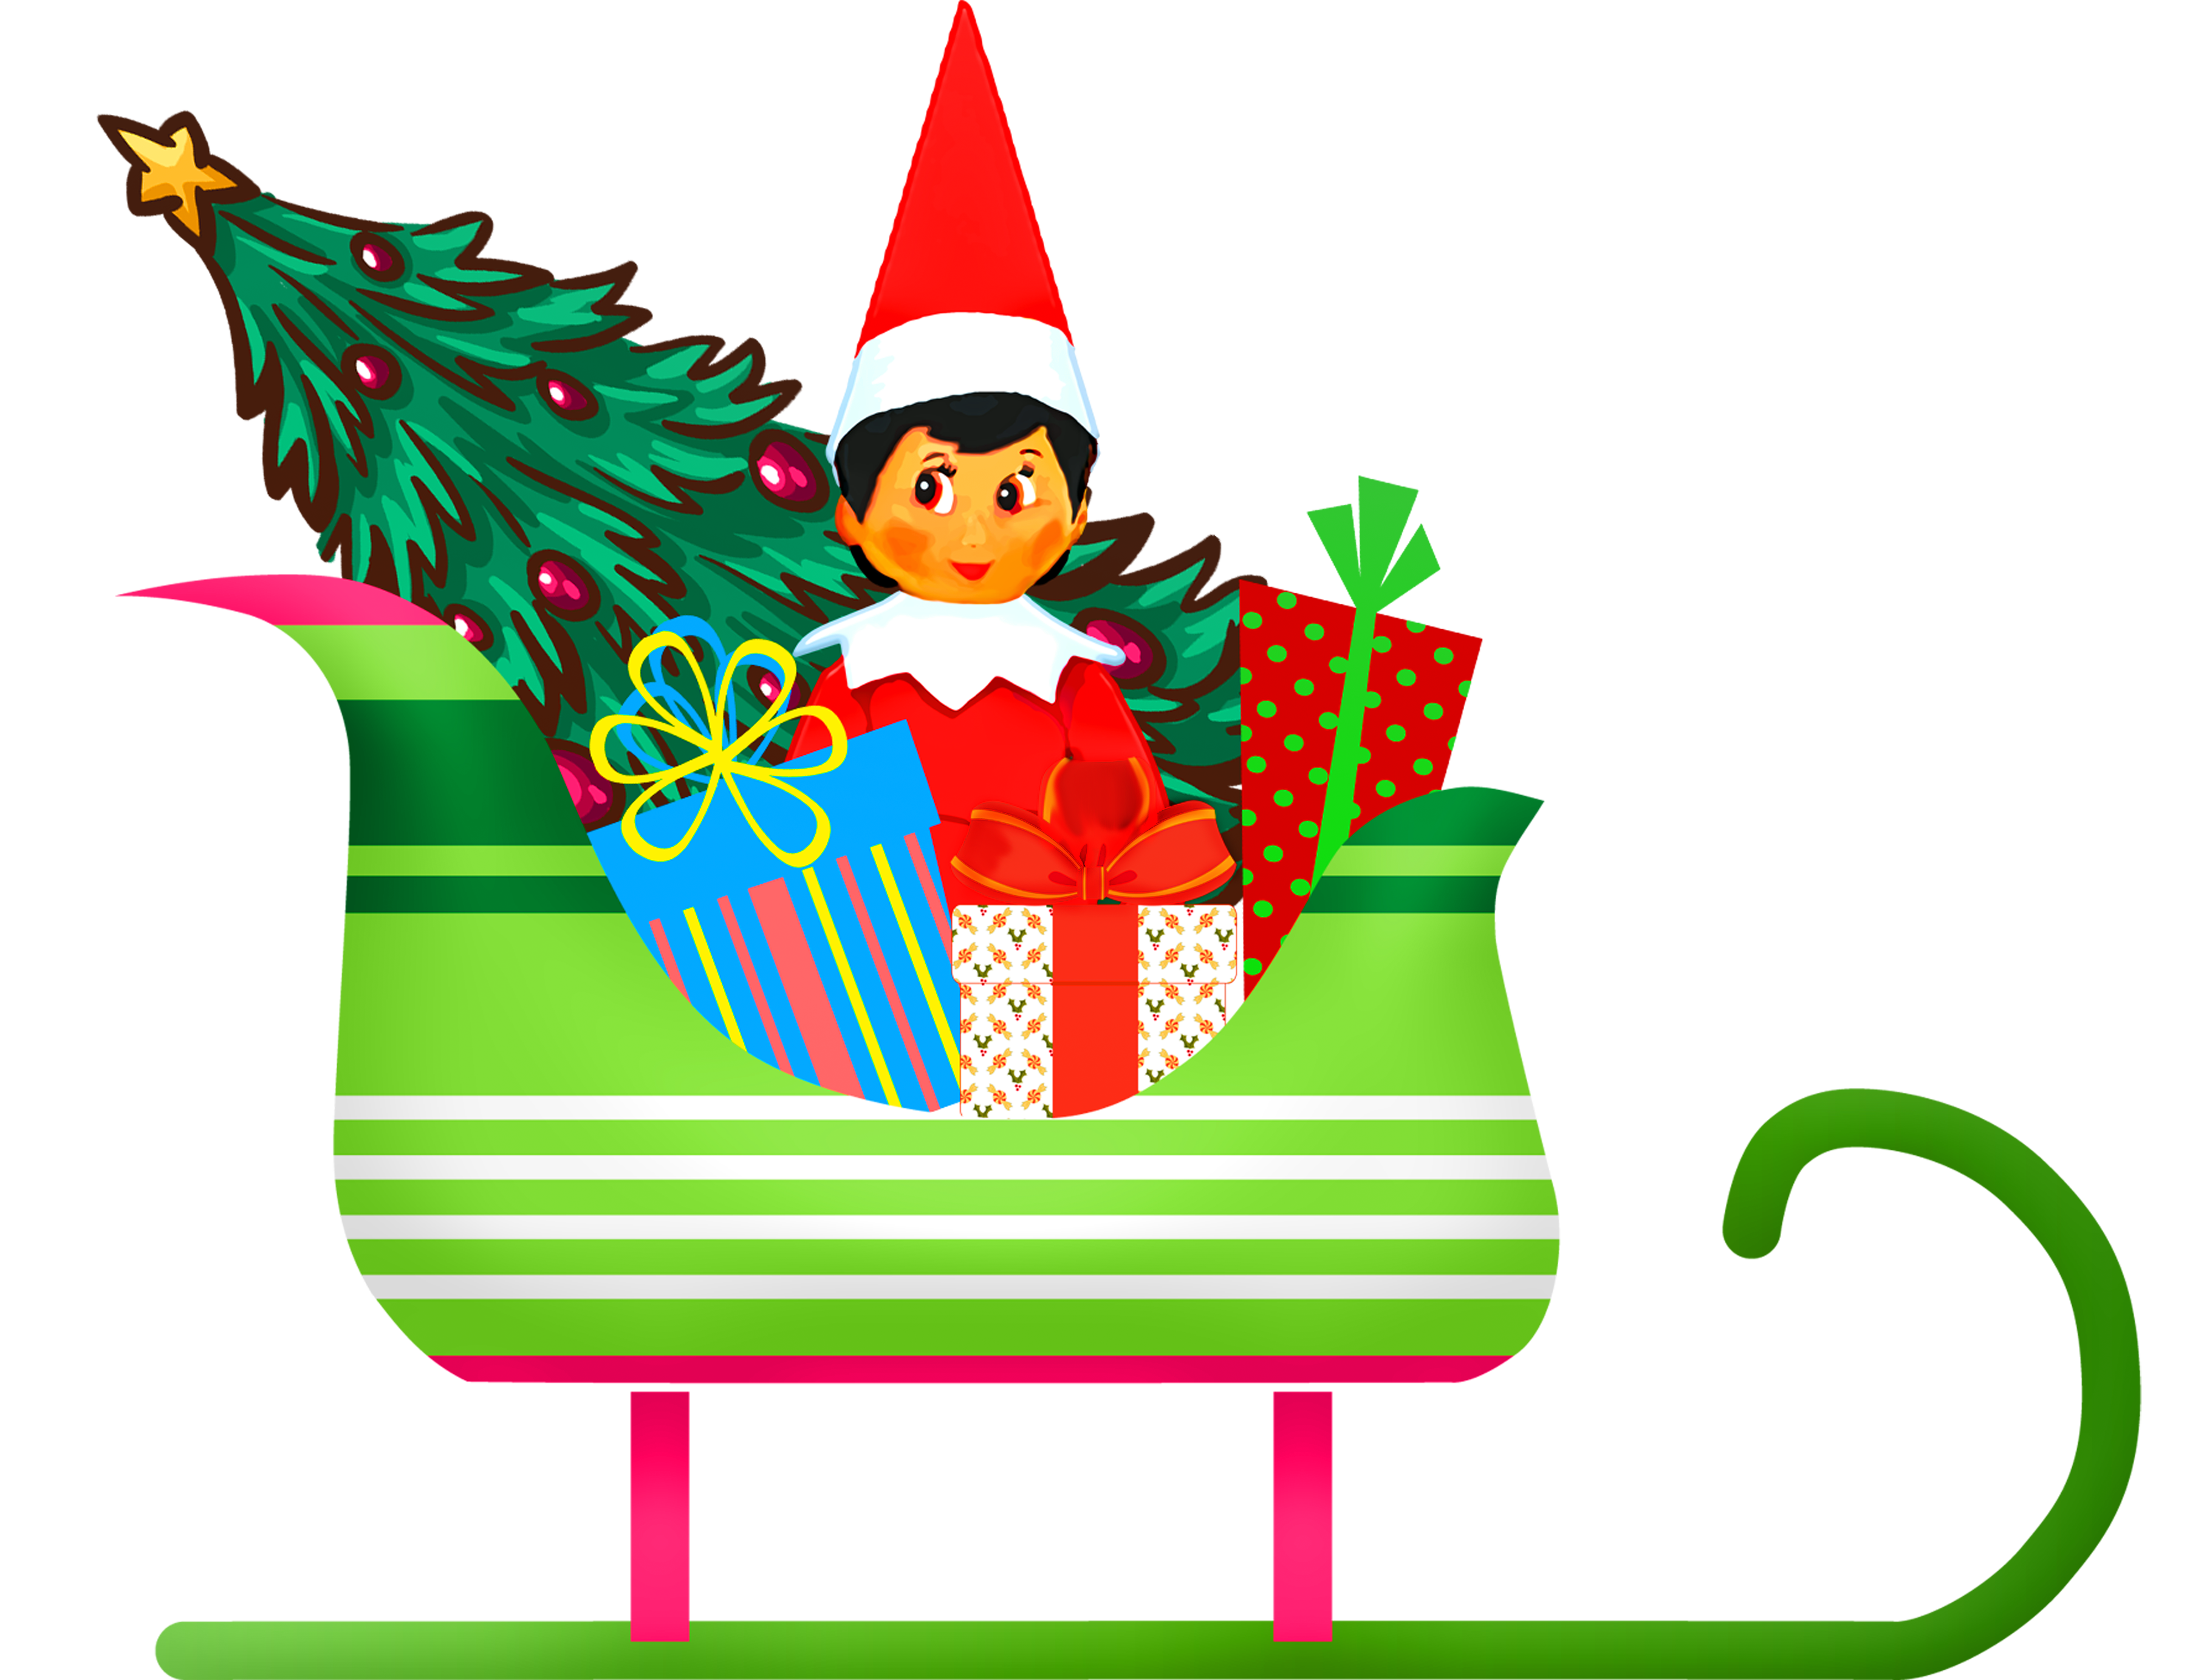 Cartoon Gifts And Christmas Tree In Sleigh Free Image The best selection of royalty free tree cartoon vector art, graphics and stock illustrations. https pixy org licence php